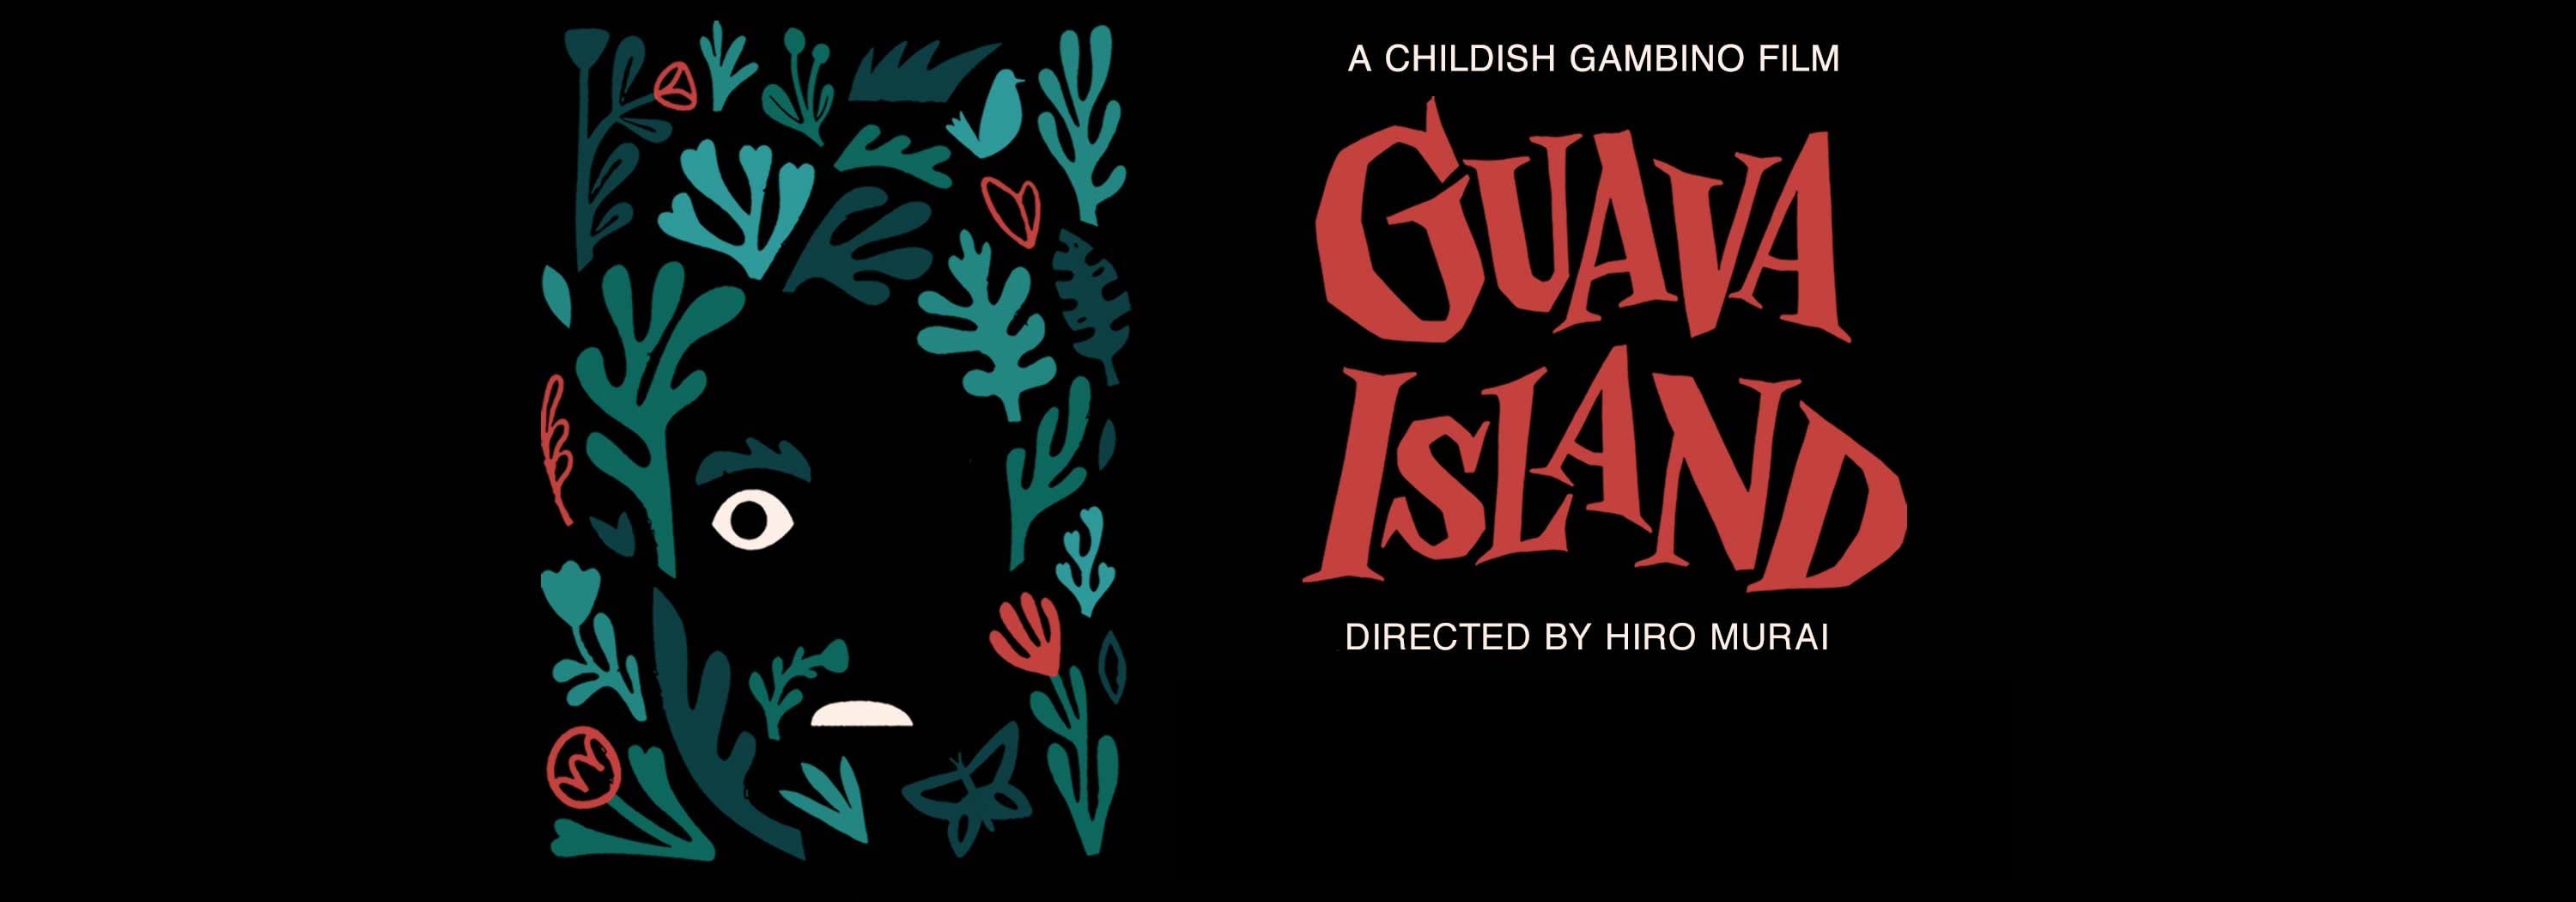 Guava Island a Childish Gambino film